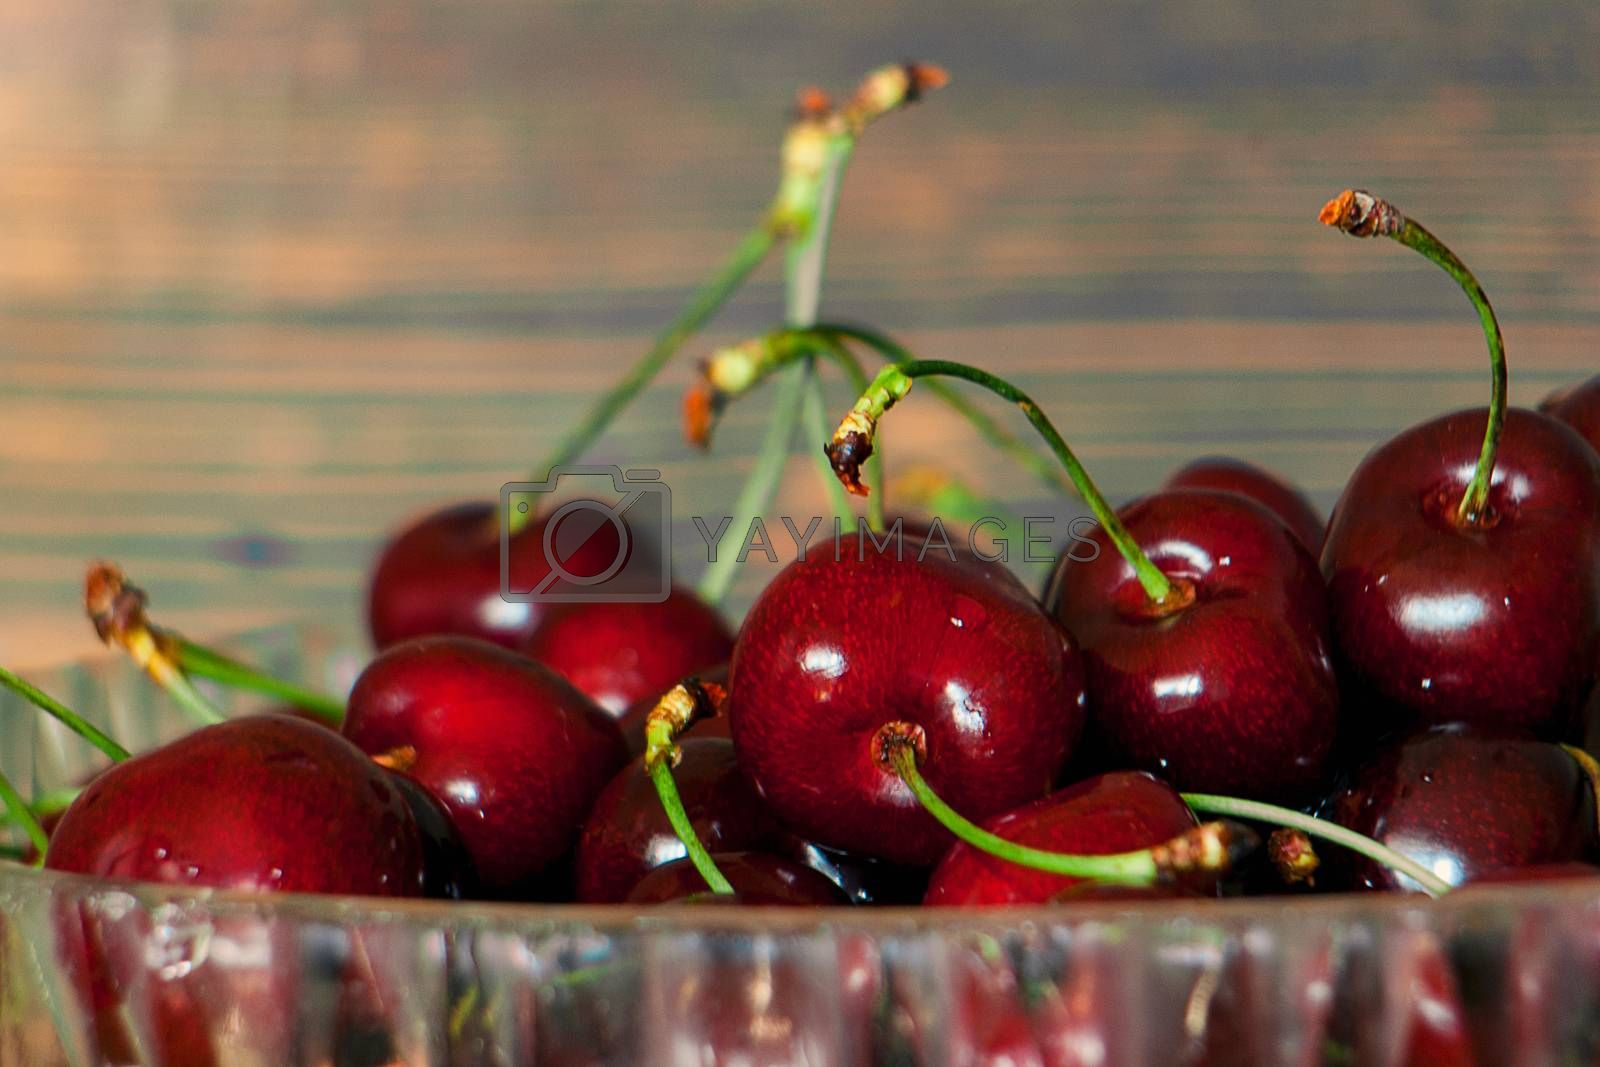 Fresh cherries in jar on the wooden background. Selective focus. Focus on the right cherries in front of jar.